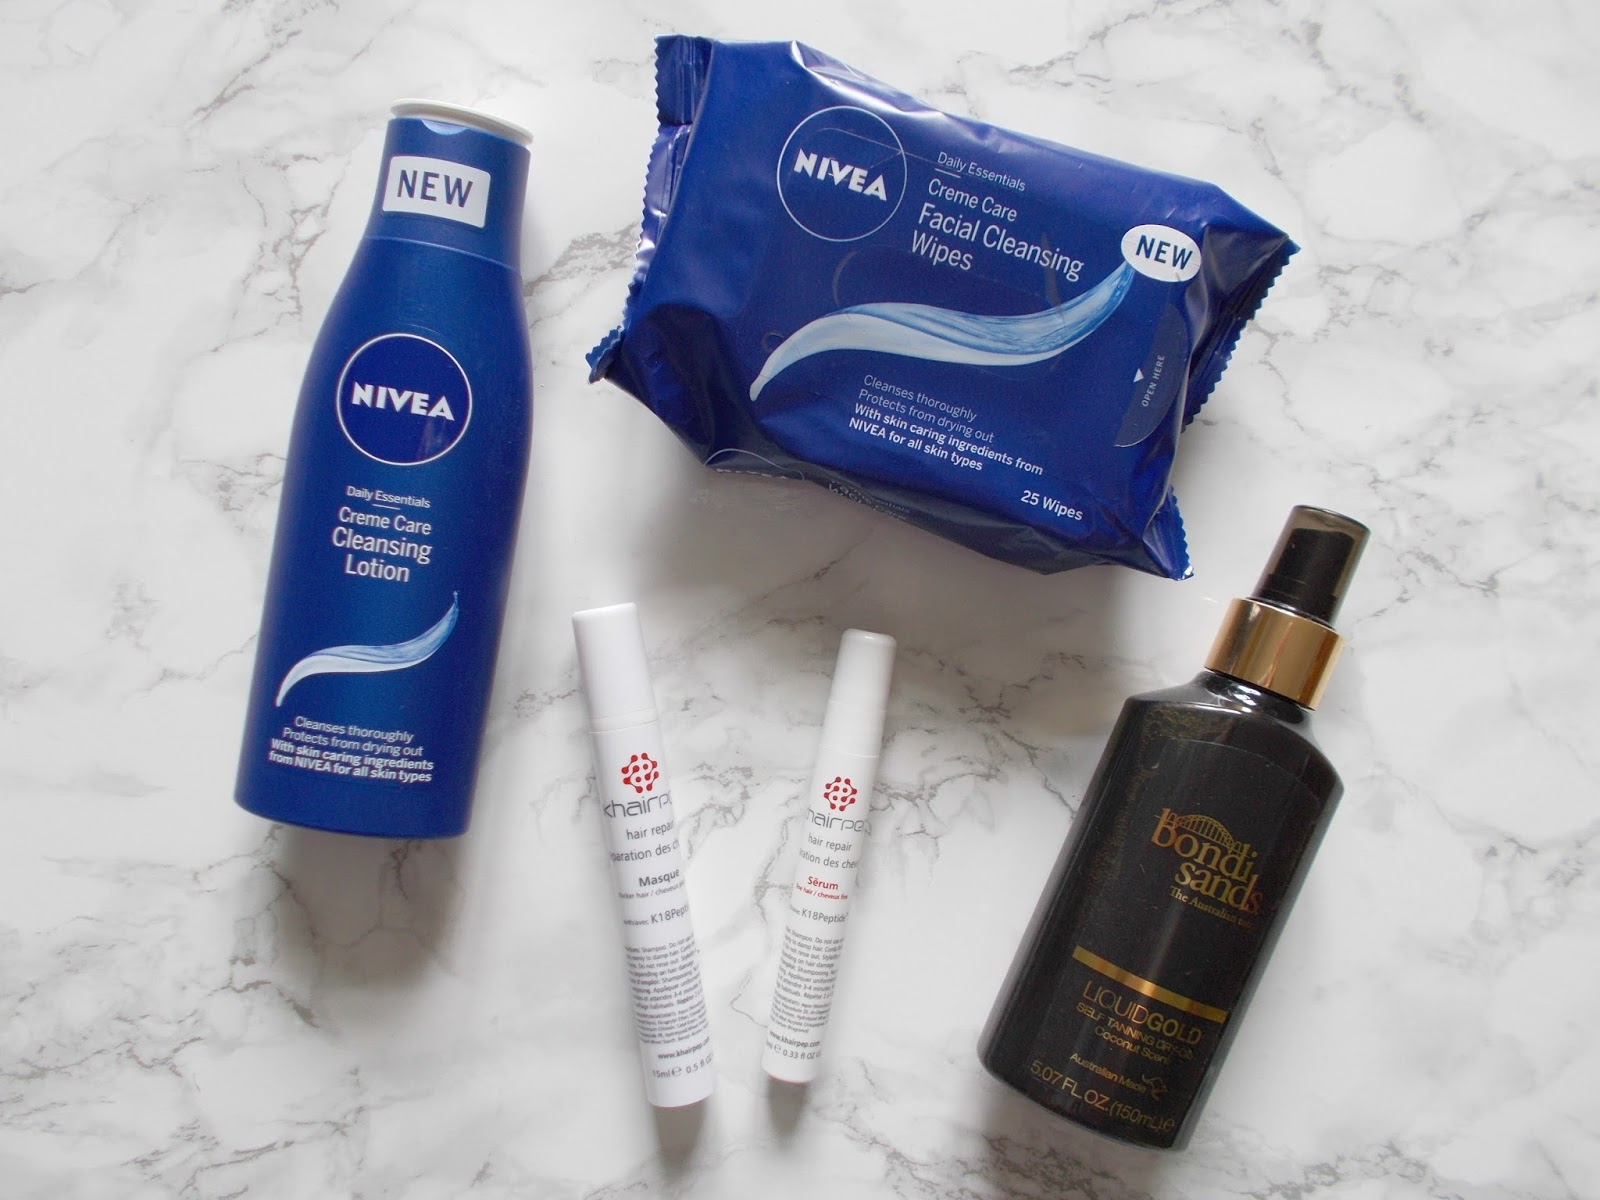 nivea daily essentials cleansing wipes facial cleansing lotion khairpep hair repair masque serum bondi sands liquid gold self tan oil review